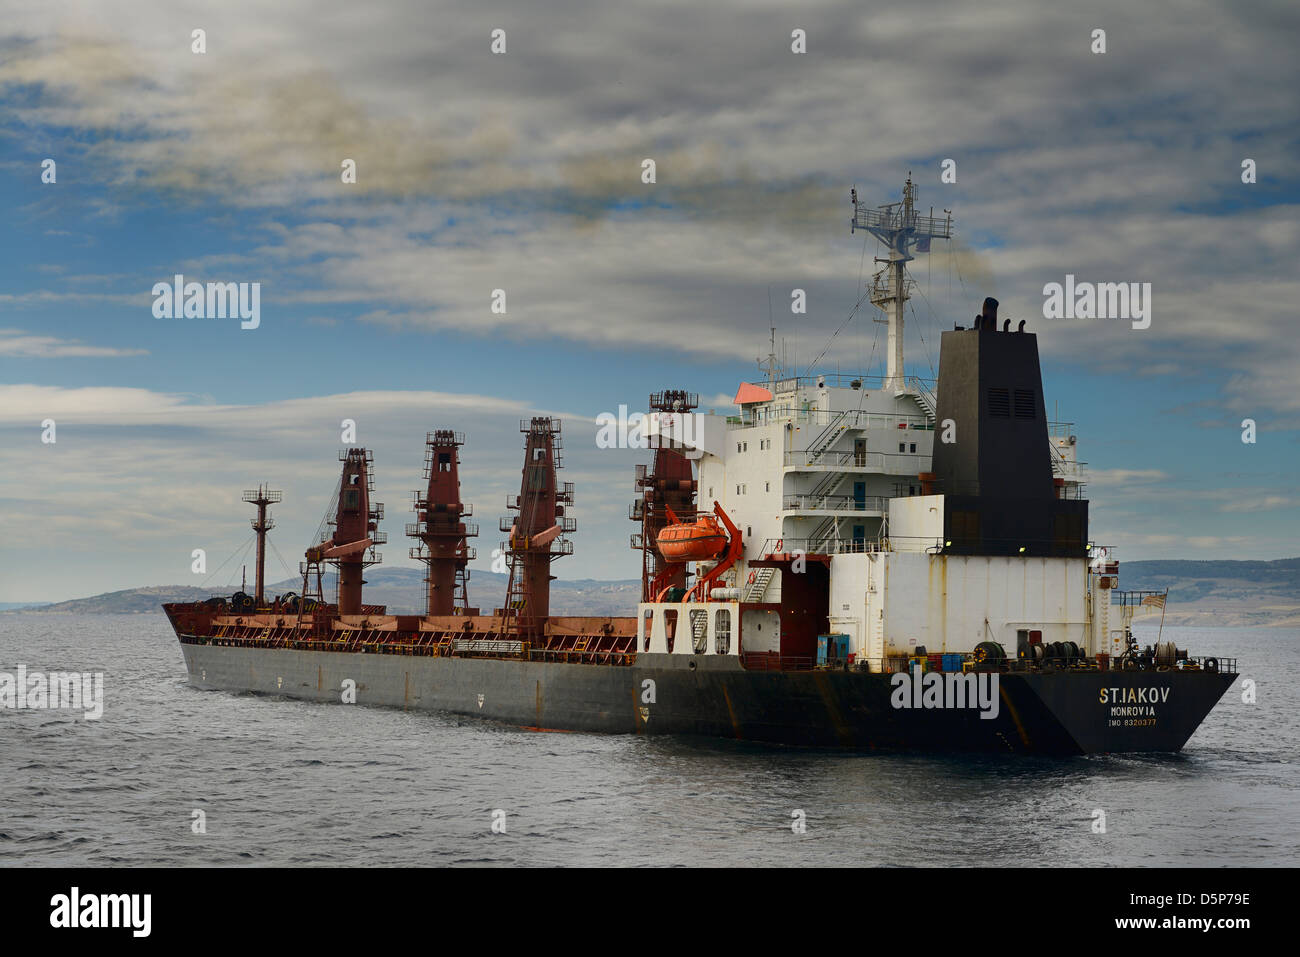 Monrovia bulk carrier ship in the Dardanelles Turkey heading for the Aegean Sea - Stock Image